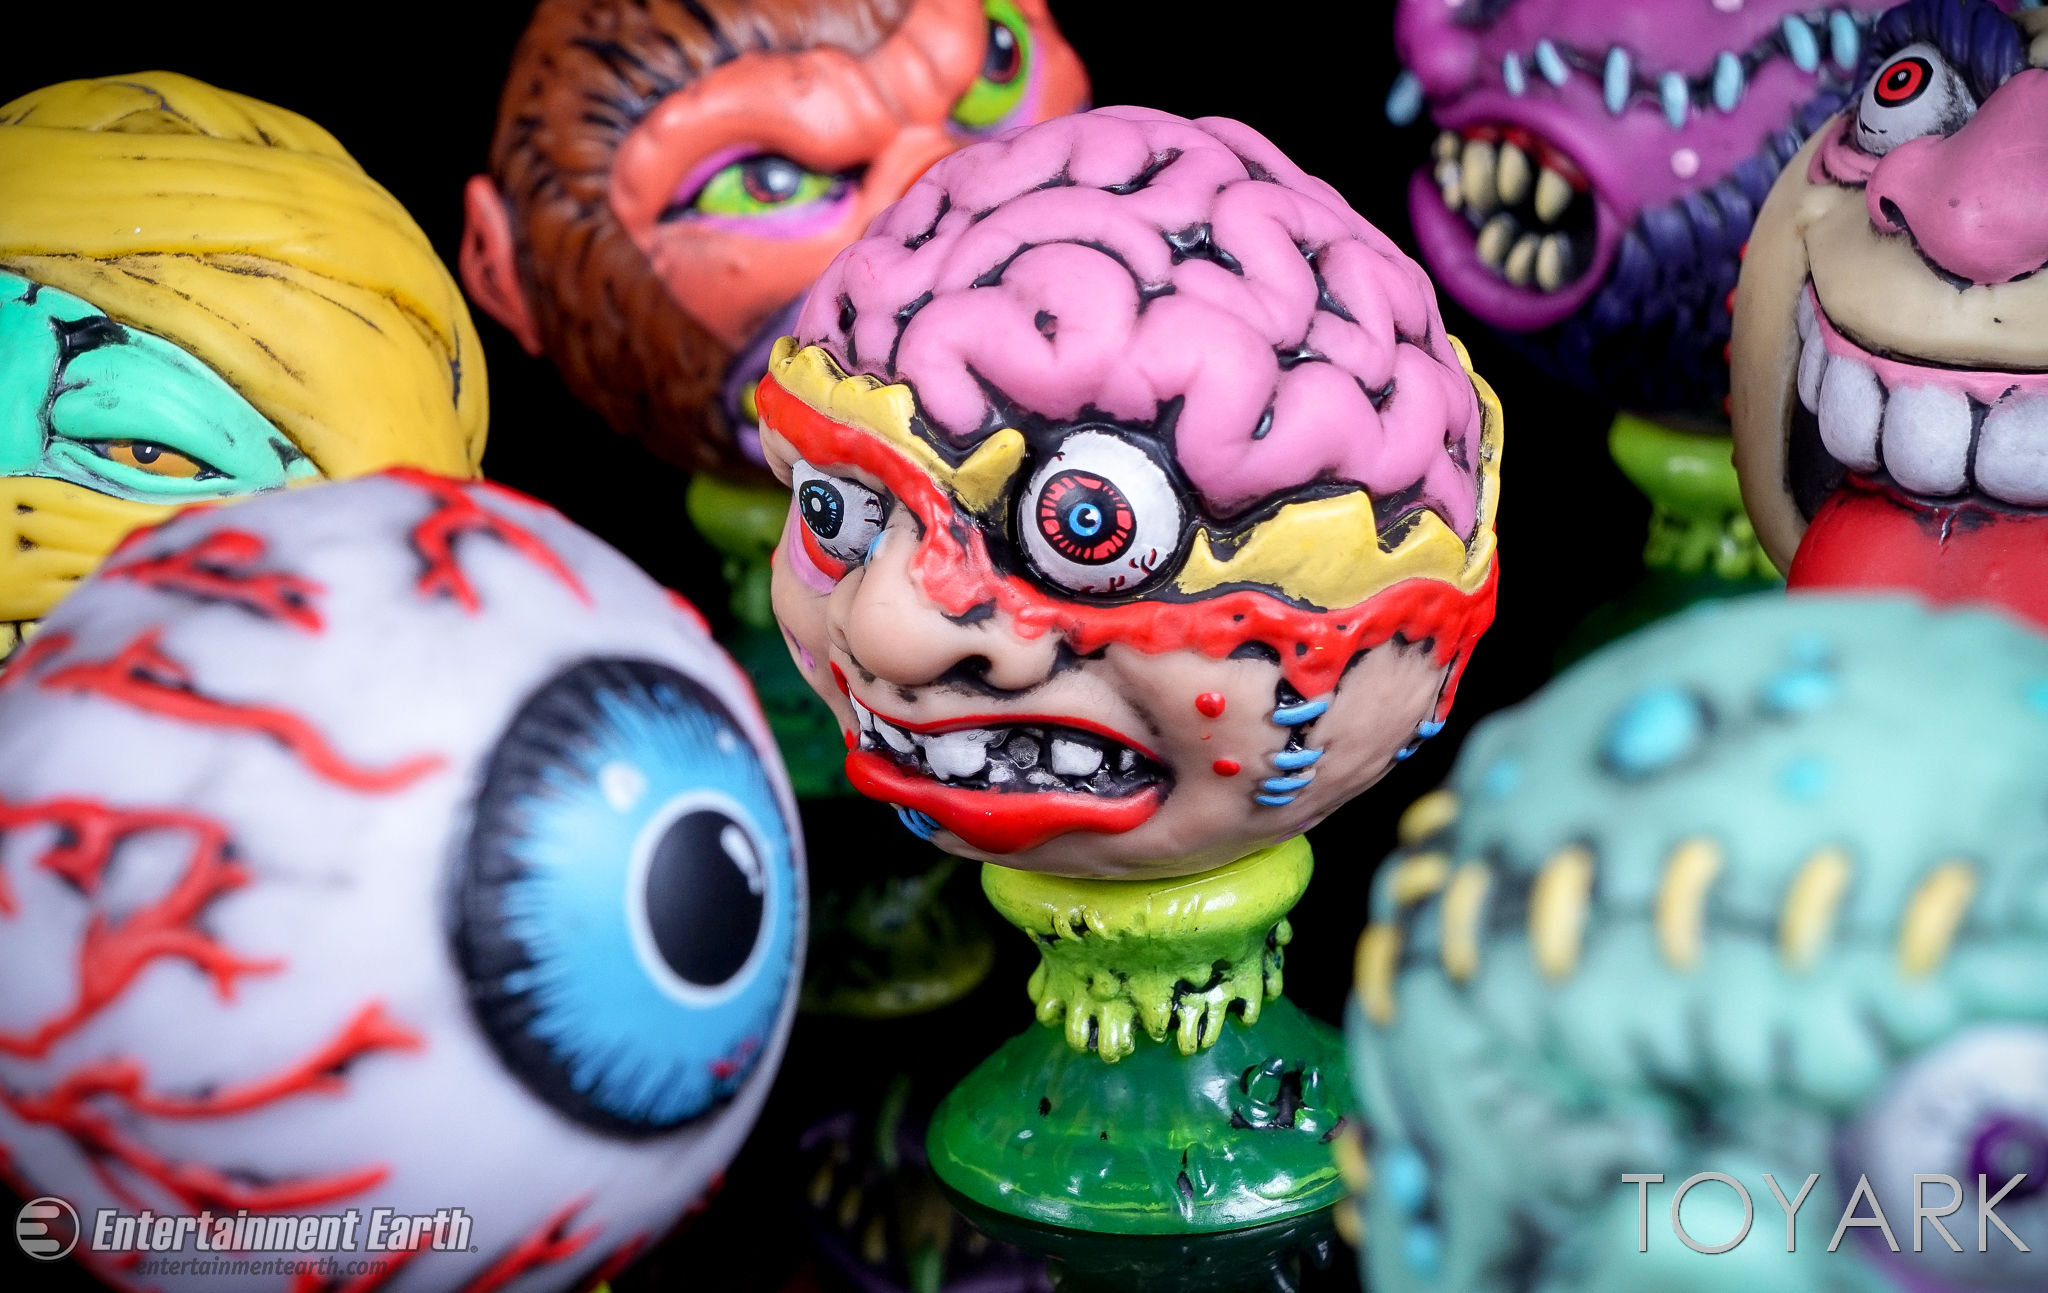 http://news.toyark.com/wp-content/uploads/sites/4/2017/02/Kidrobot-Madballs-Blind-Box-060.jpg